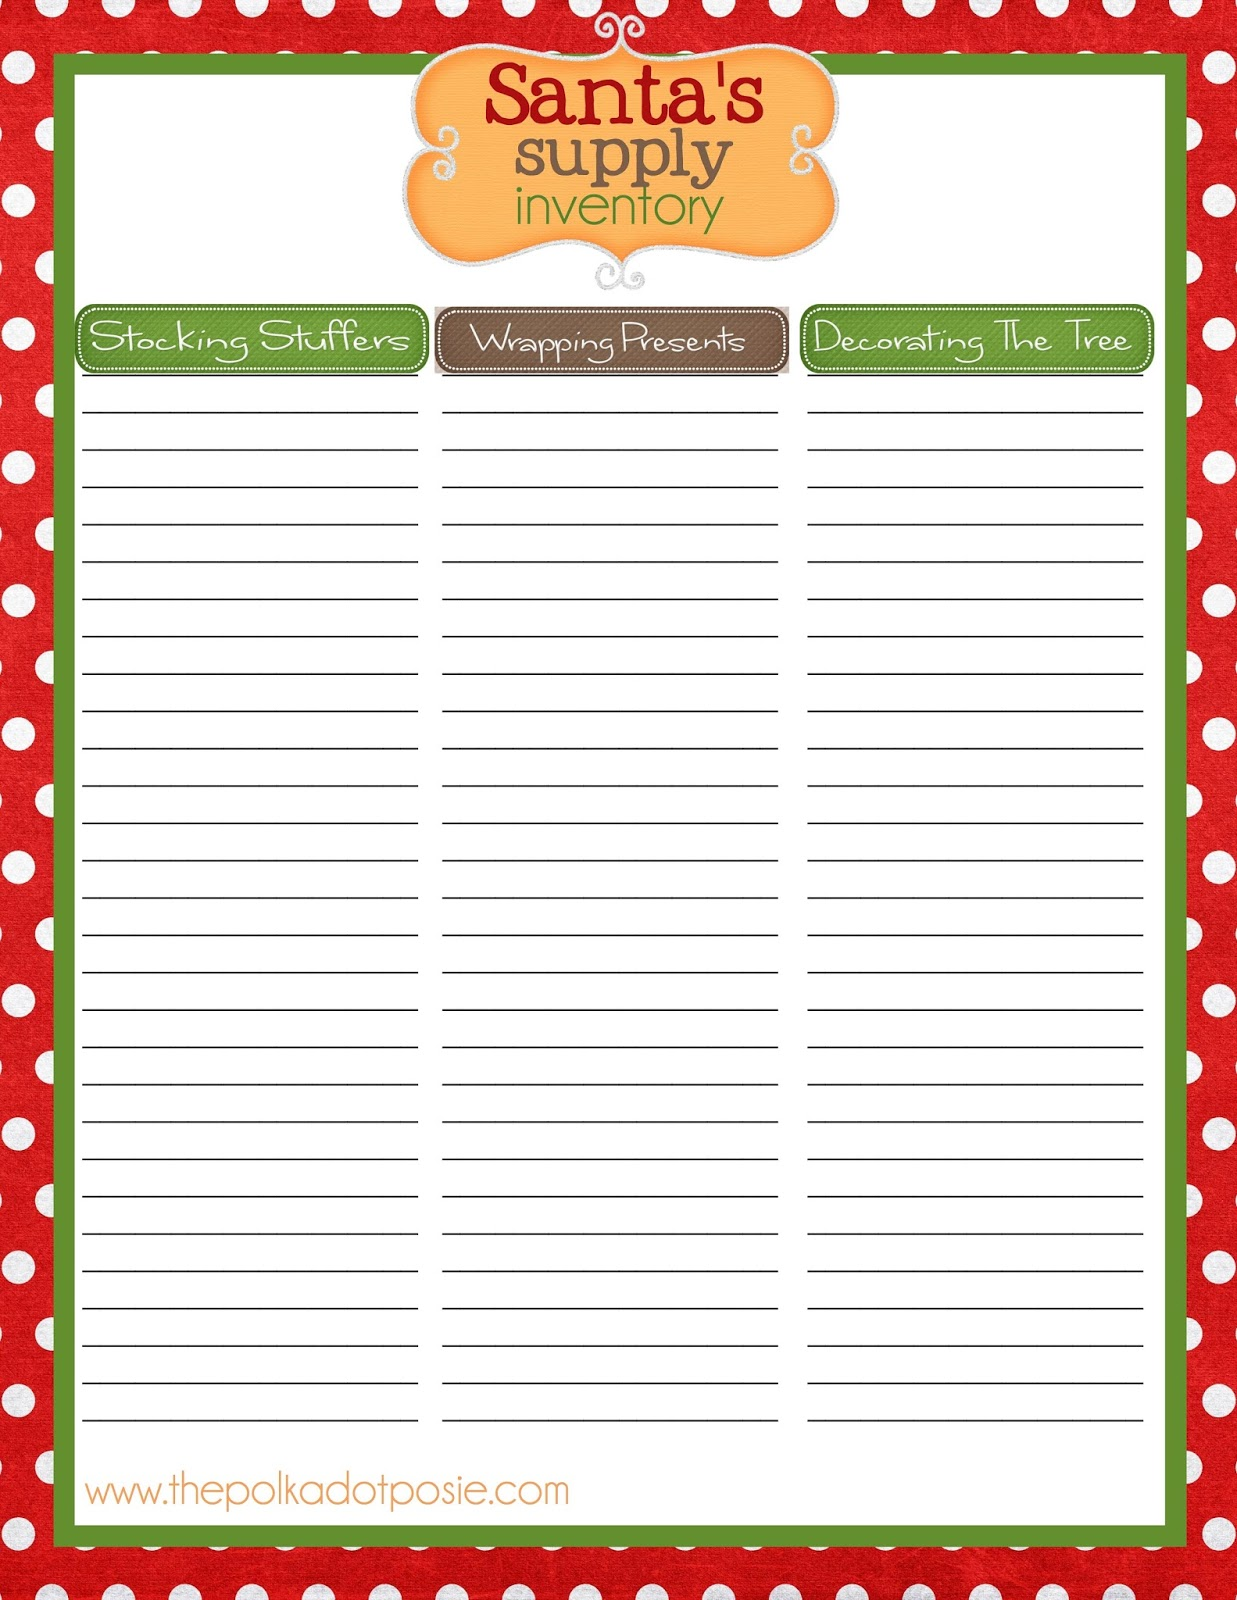 Christmas Party Sign In Sheet | Search Results | Calendar 2015